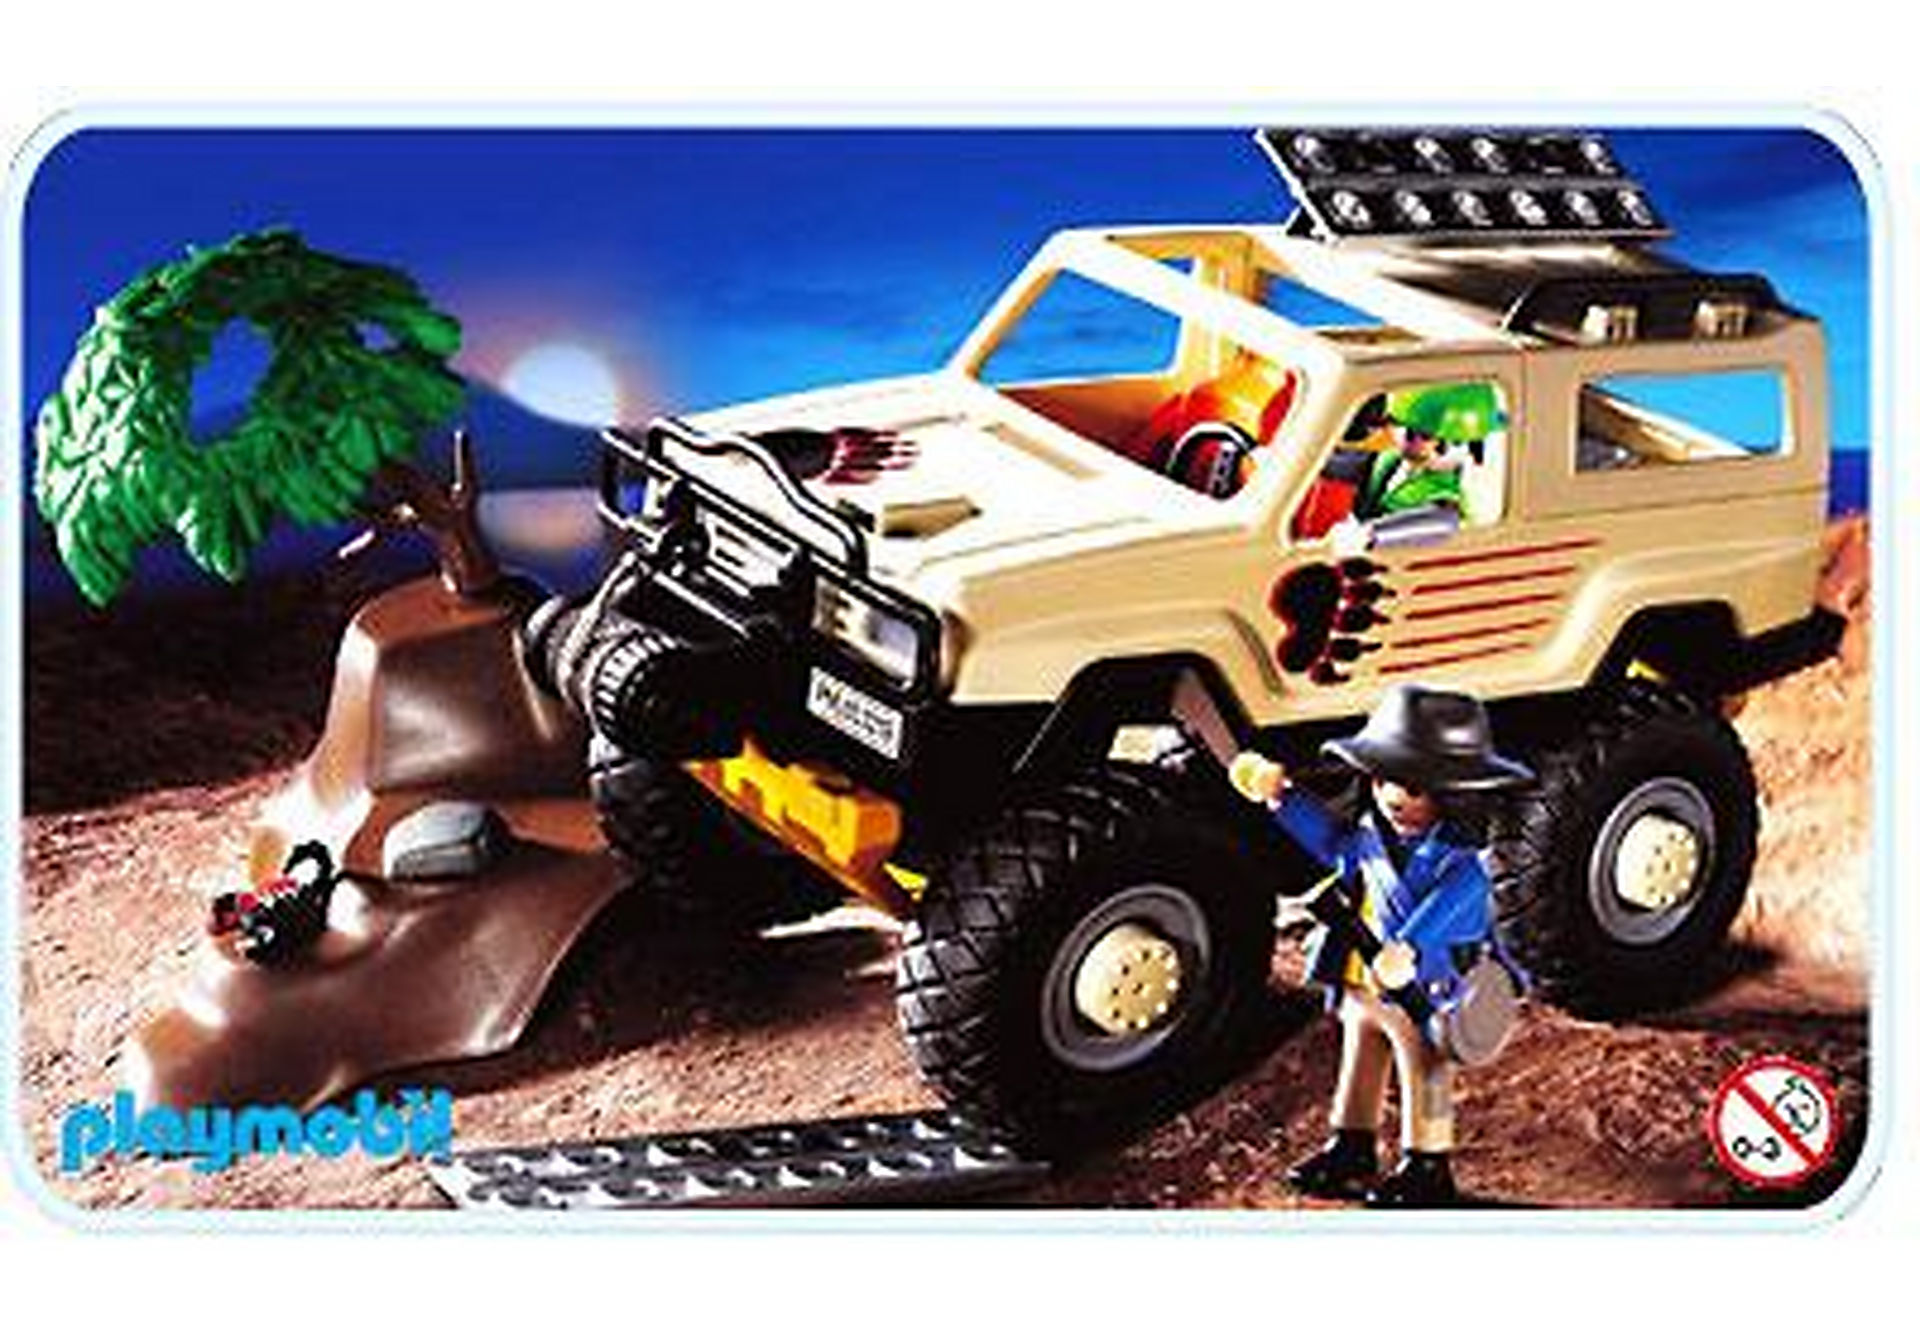 http://media.playmobil.com/i/playmobil/3219-C_product_detail/Offroad-Pickup